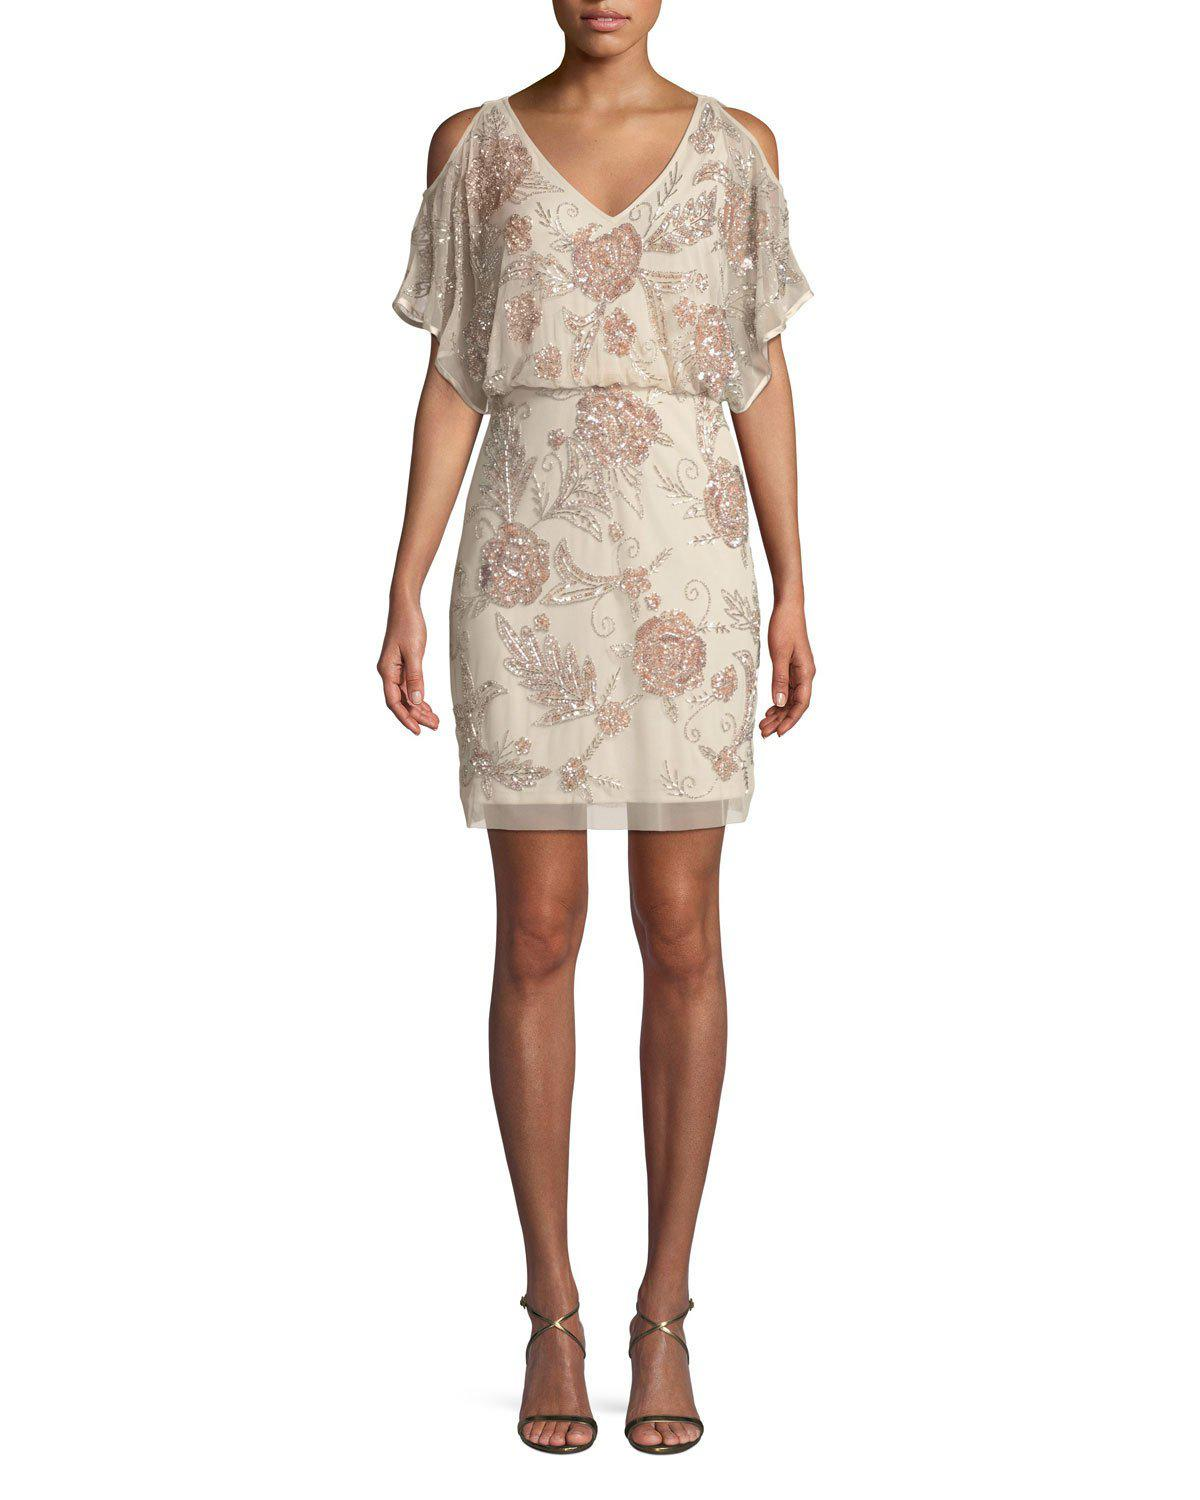 f1b8d882006 Lyst - Aidan Mattox Slit-sleeve Beaded Blouson Dress in Natural